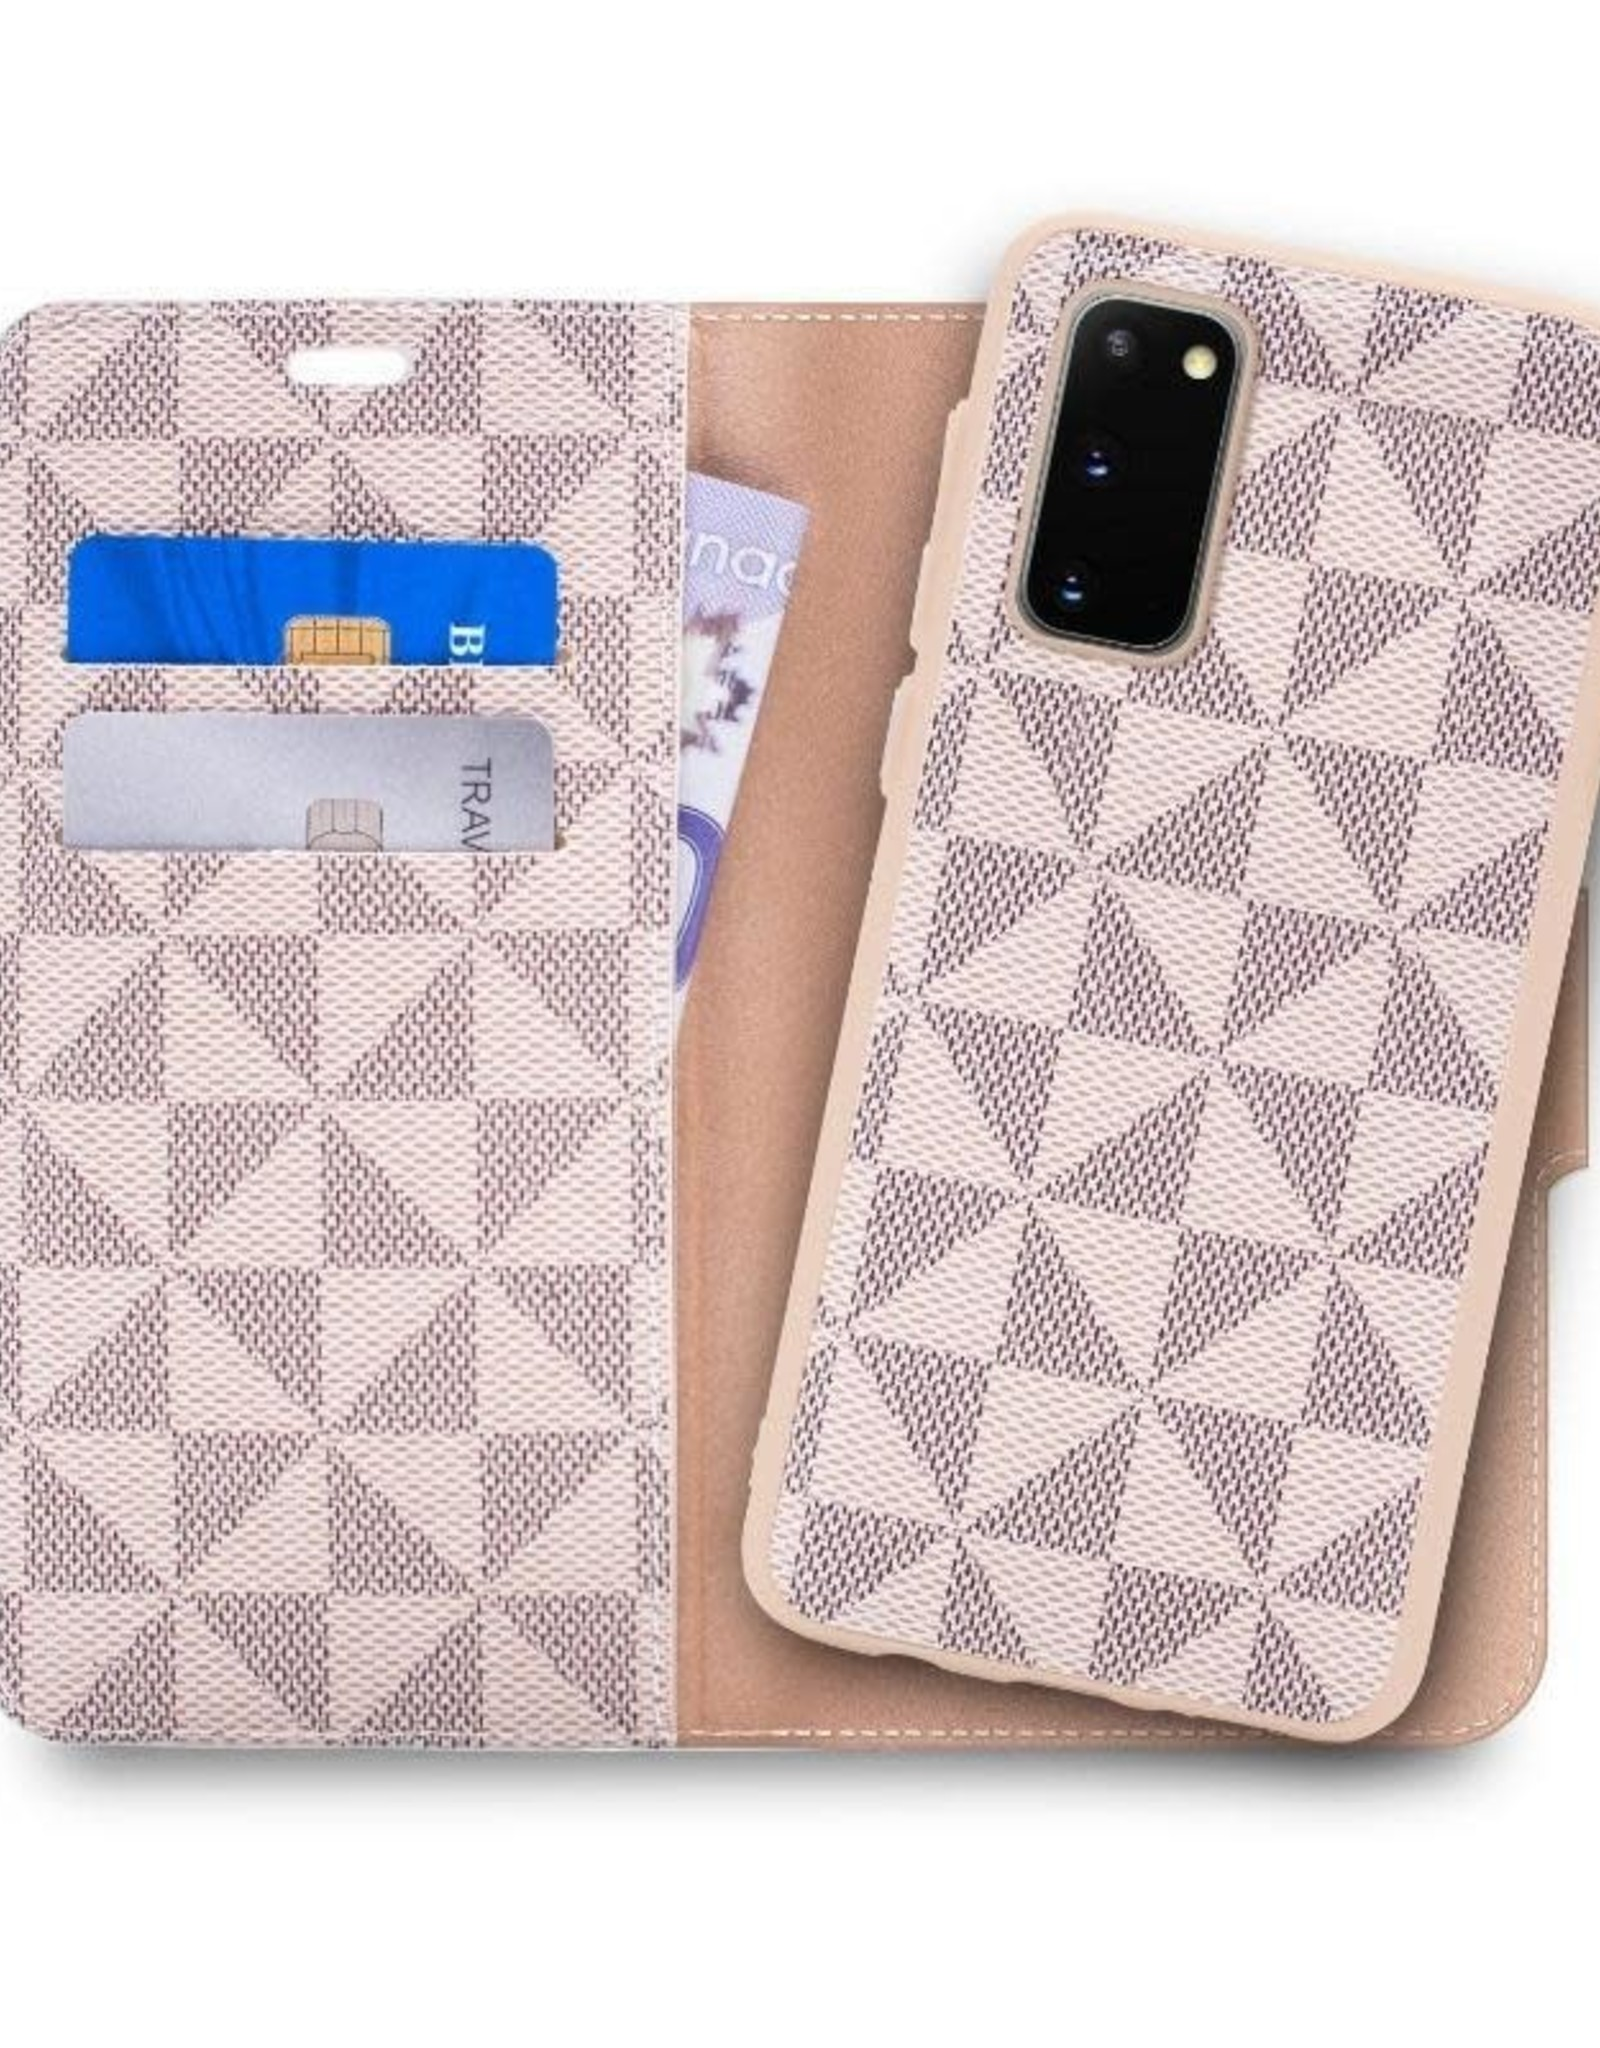 Caseco Caseco | Park Ave Magnetic Wallet Folio Case Samsung Galaxy S20 - Gold